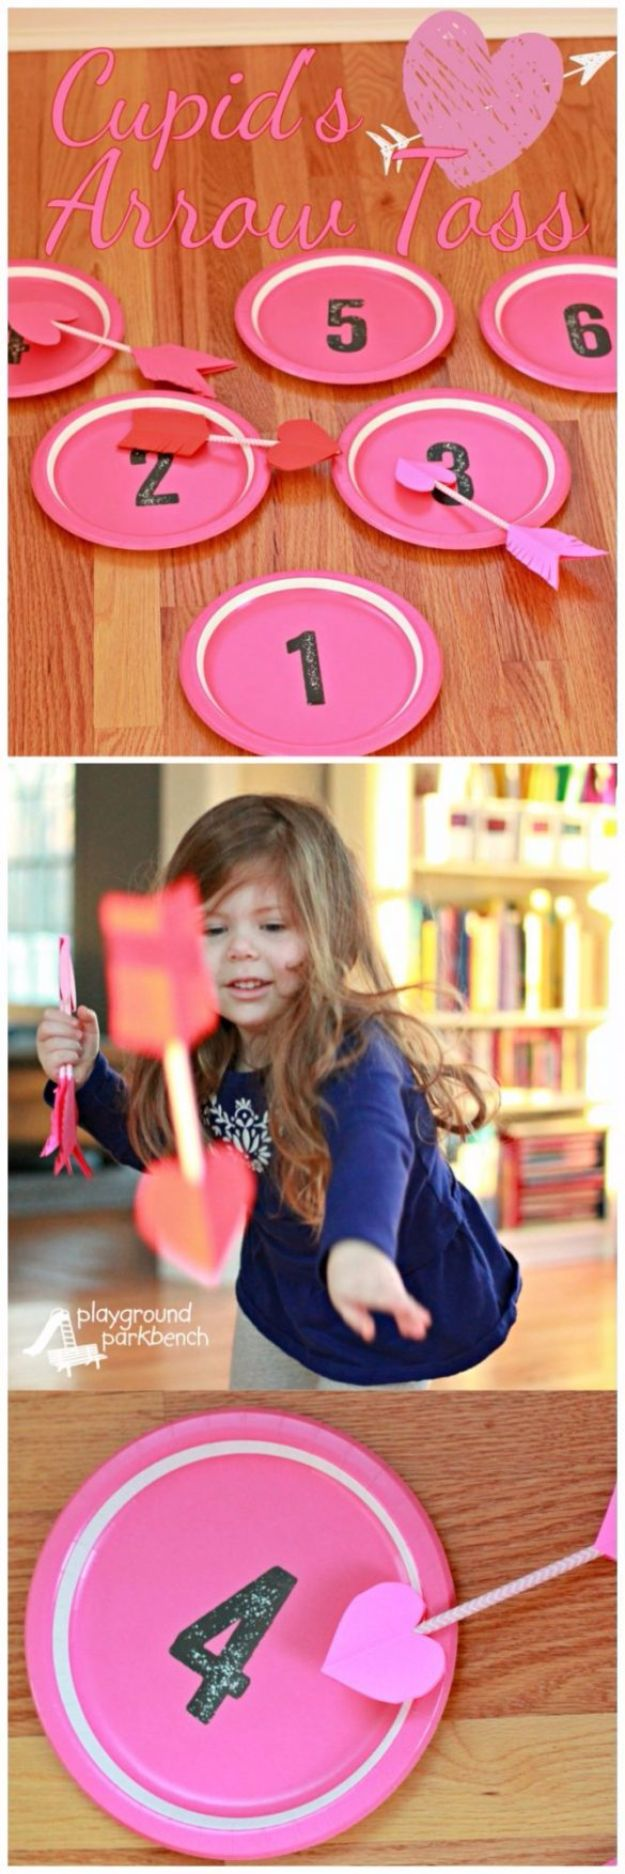 Cool Games To Make for Valentines Day - Cupid's Arrow Toss - Cheap and Easy Crafts For Valentine Parties - Ideas for Kids and Adults to Play Bingo, Matching, Free Printables and Cute Game Projects With Hearts, Red and Pink Art Ideas - Adorable Fun for The Holiday Celebrations #valentine #valentinesday